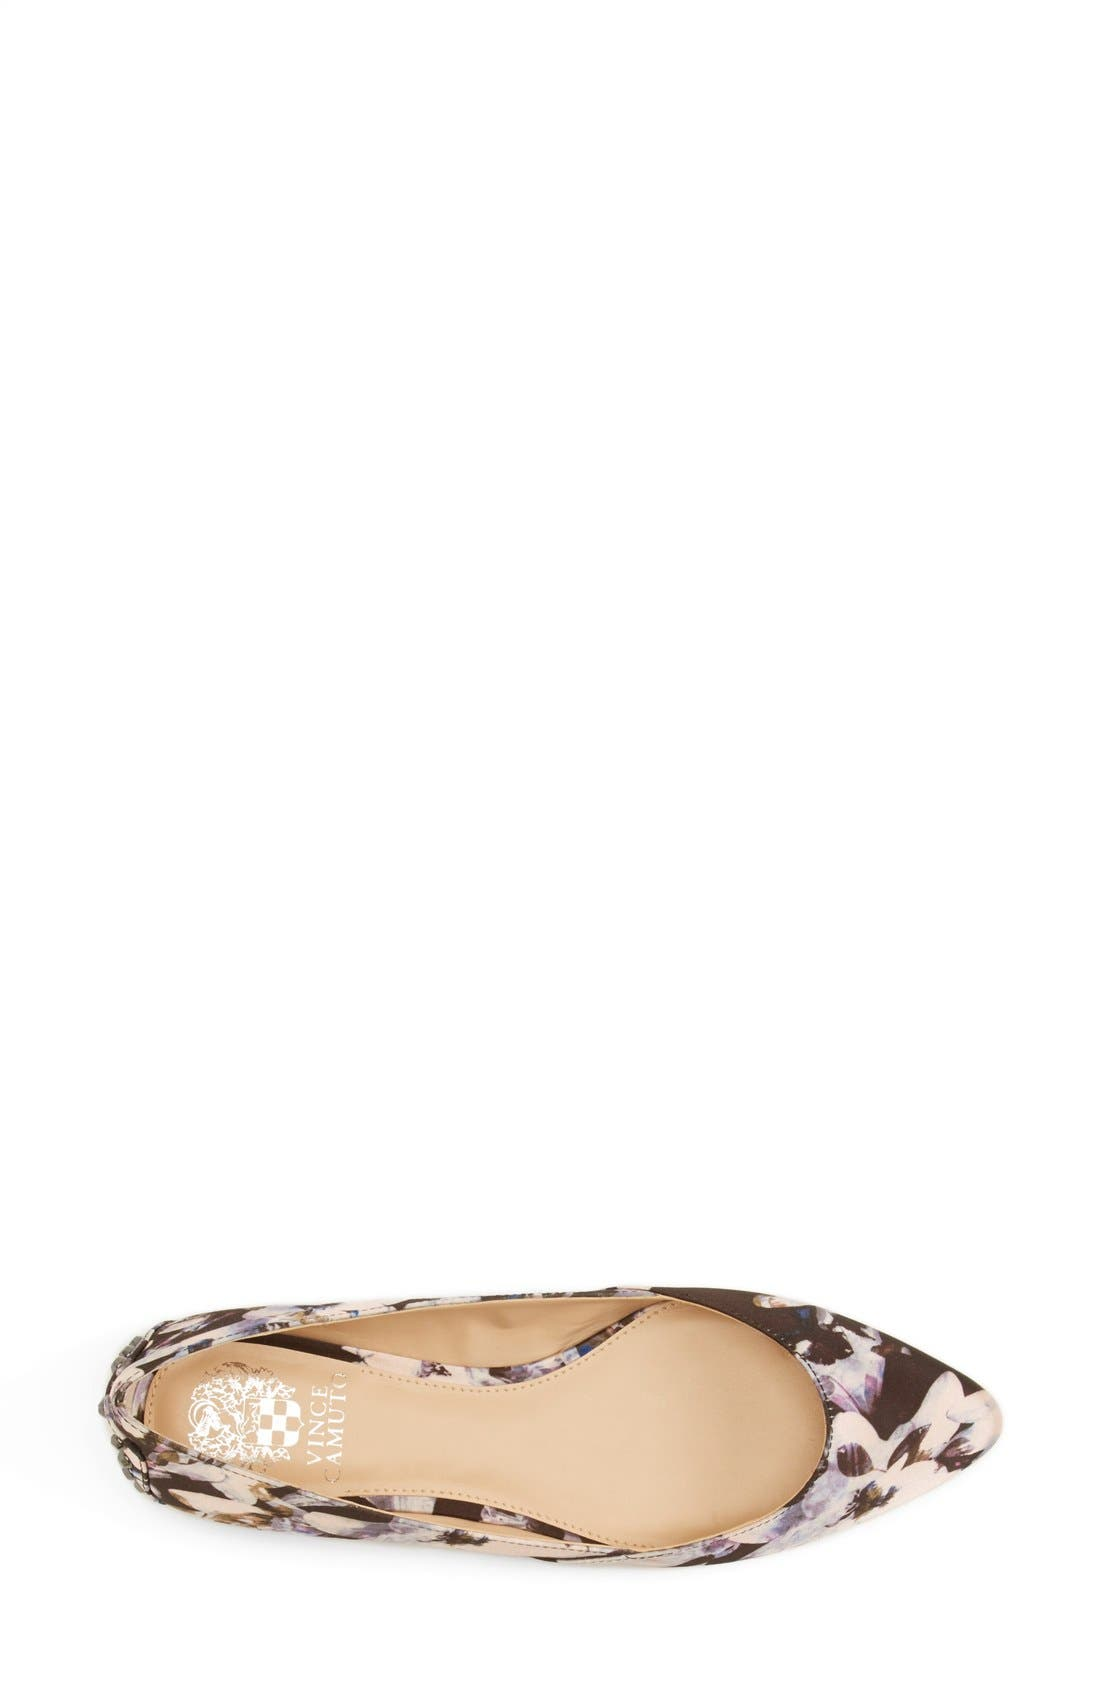 Alternate Image 3  - Vince Camuto 'Alley' Studded Flat (Women)